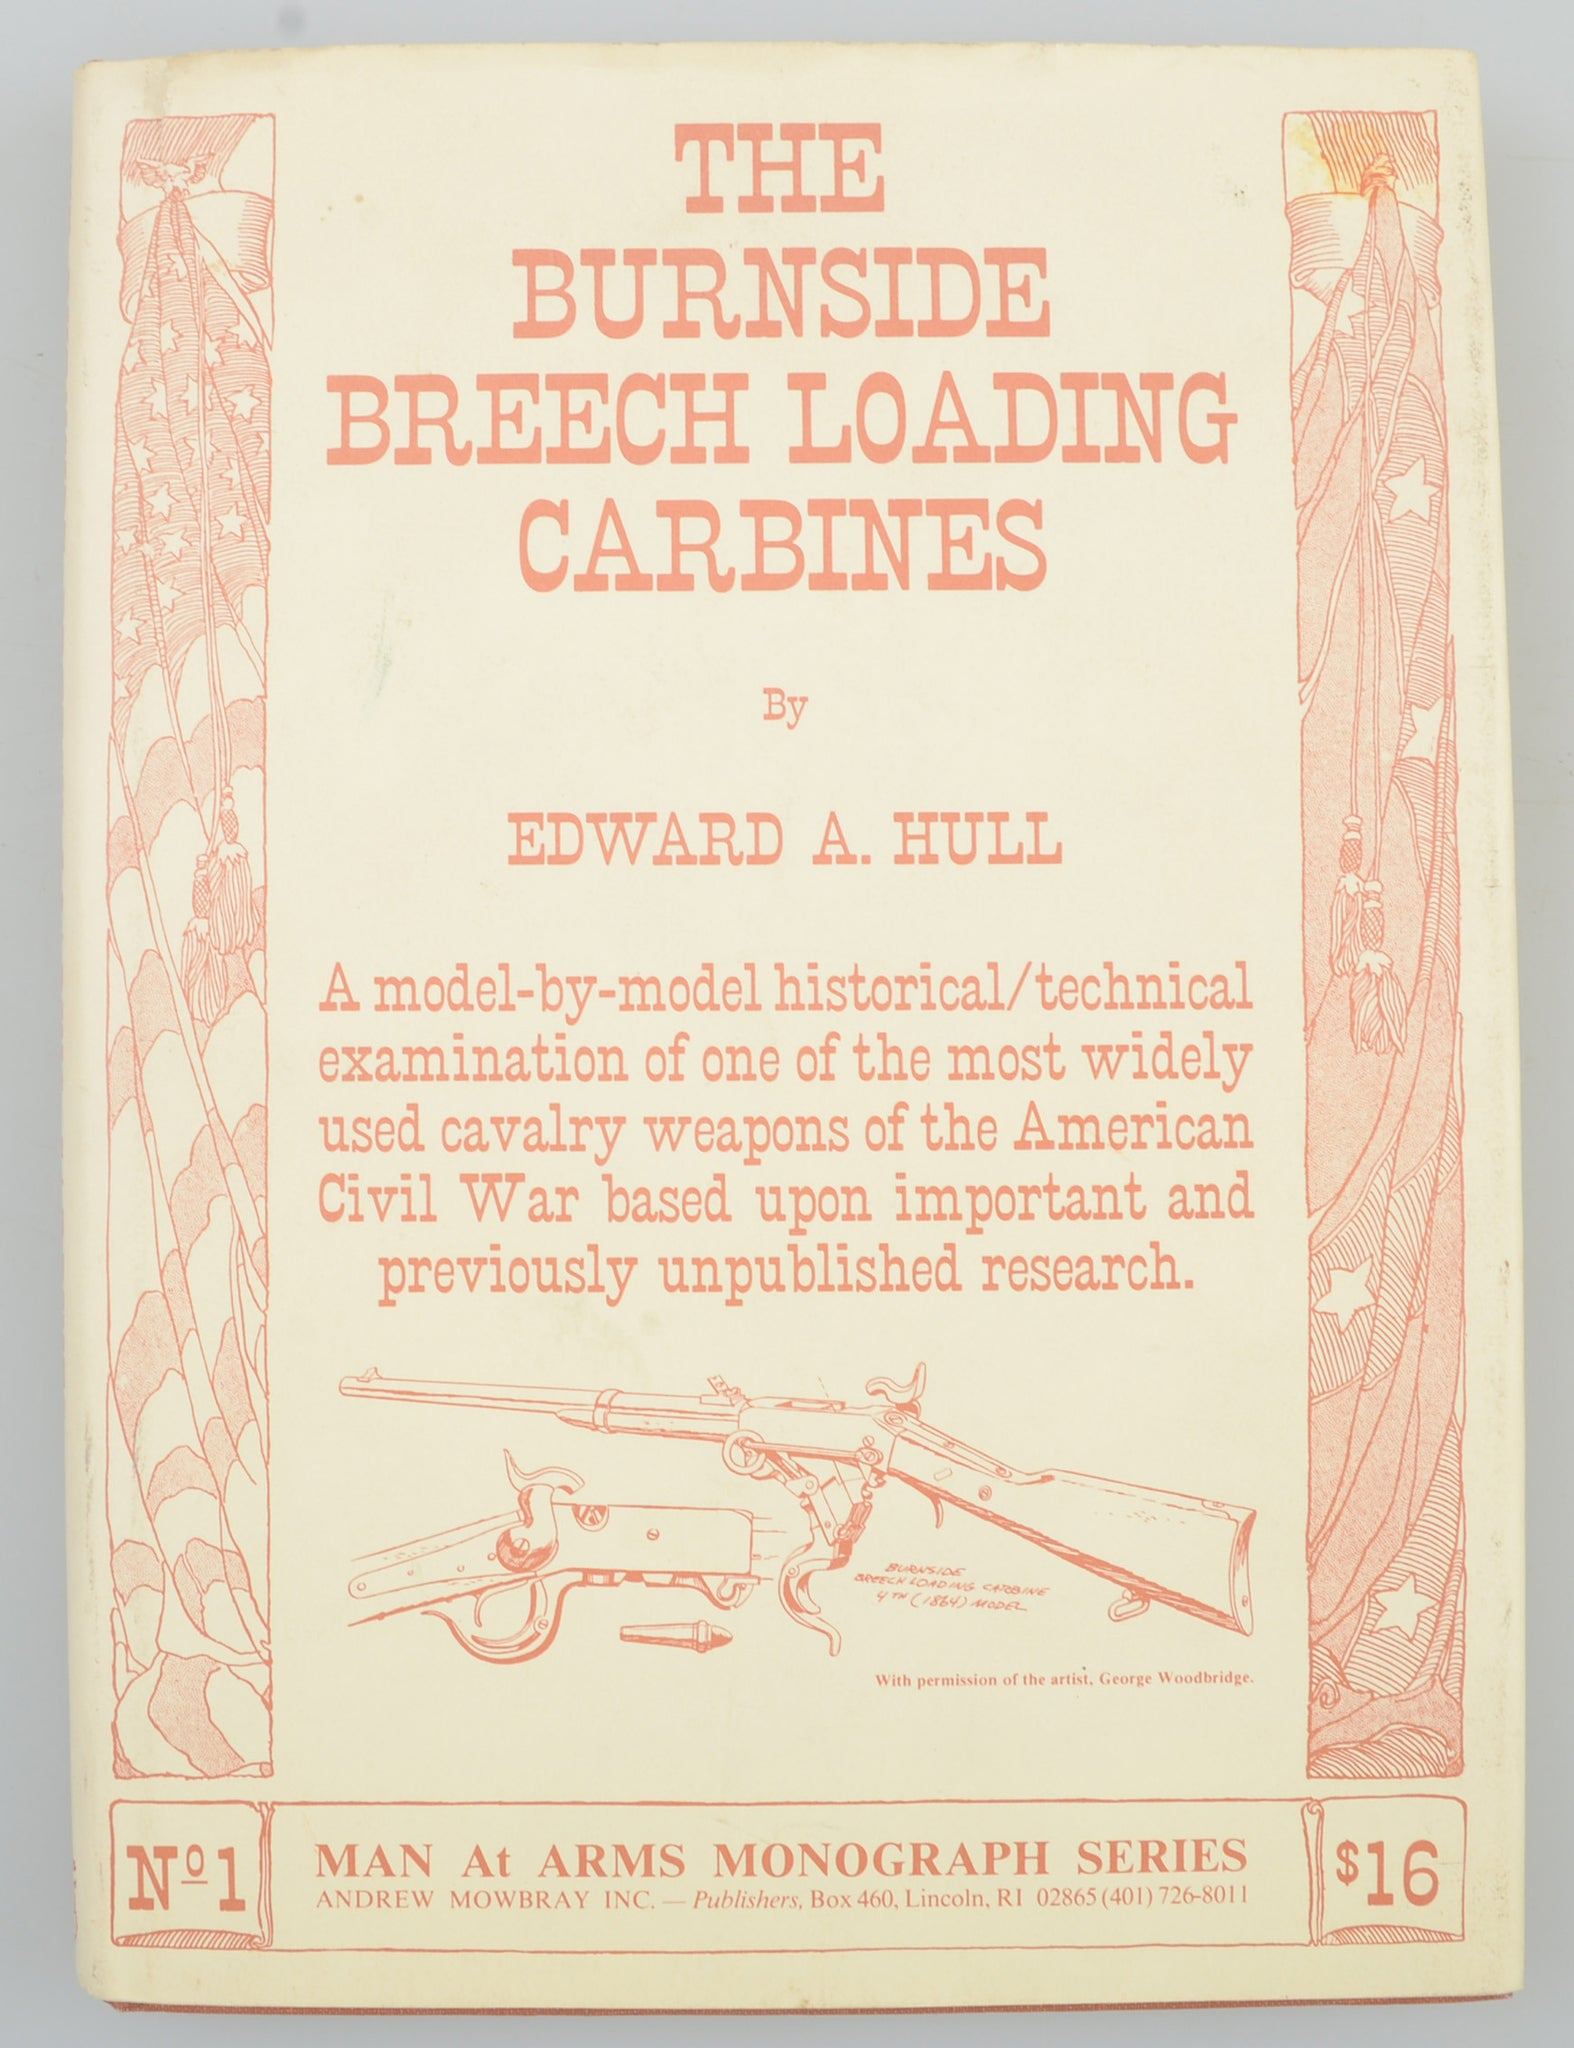 THE BURNSIDE BREECH LOADING CARBINES